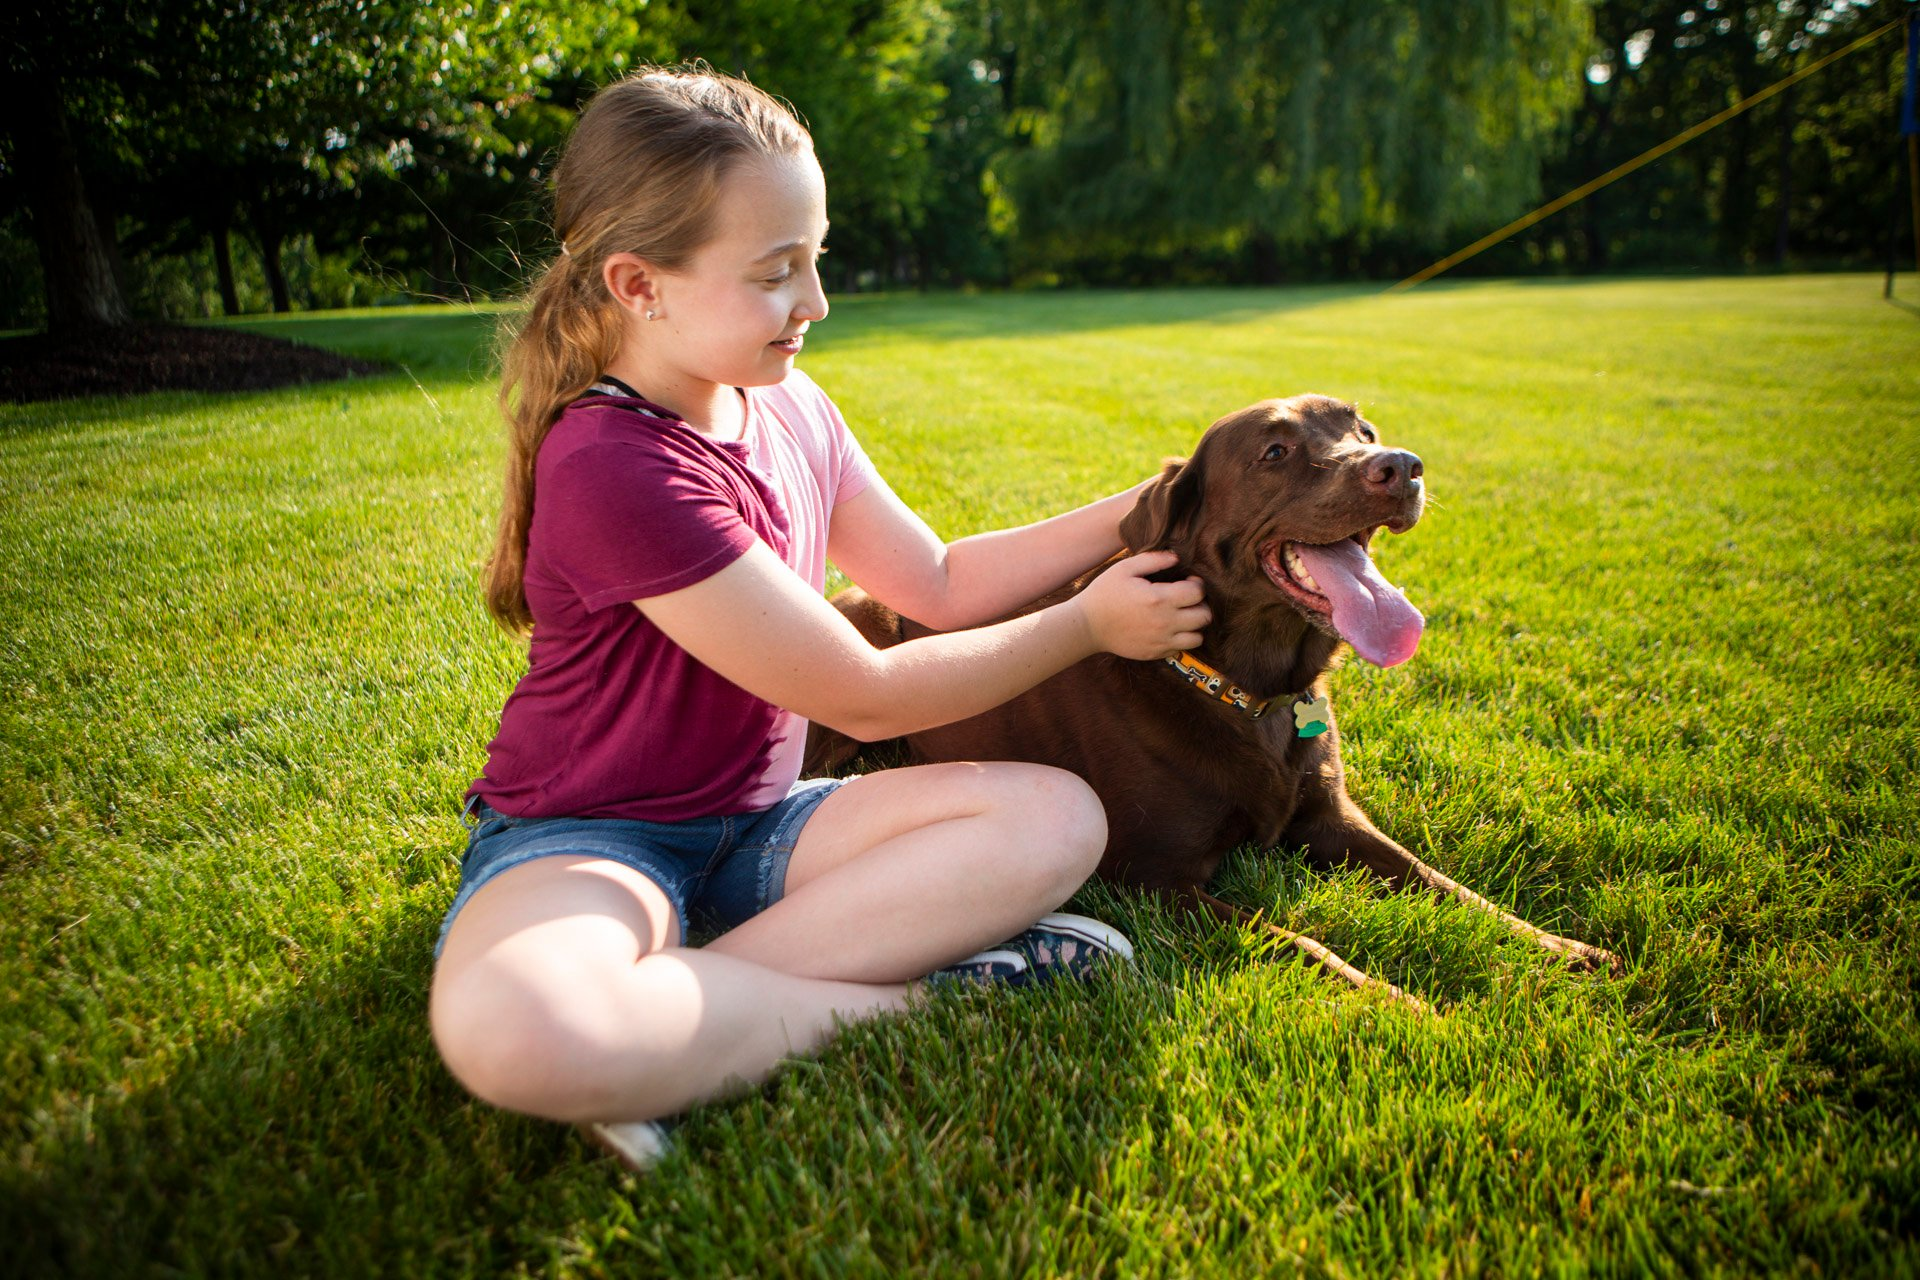 5 Essential Facts About Yard Flea and Tick Control in Allentown, Bethlehem, & Easton, PA